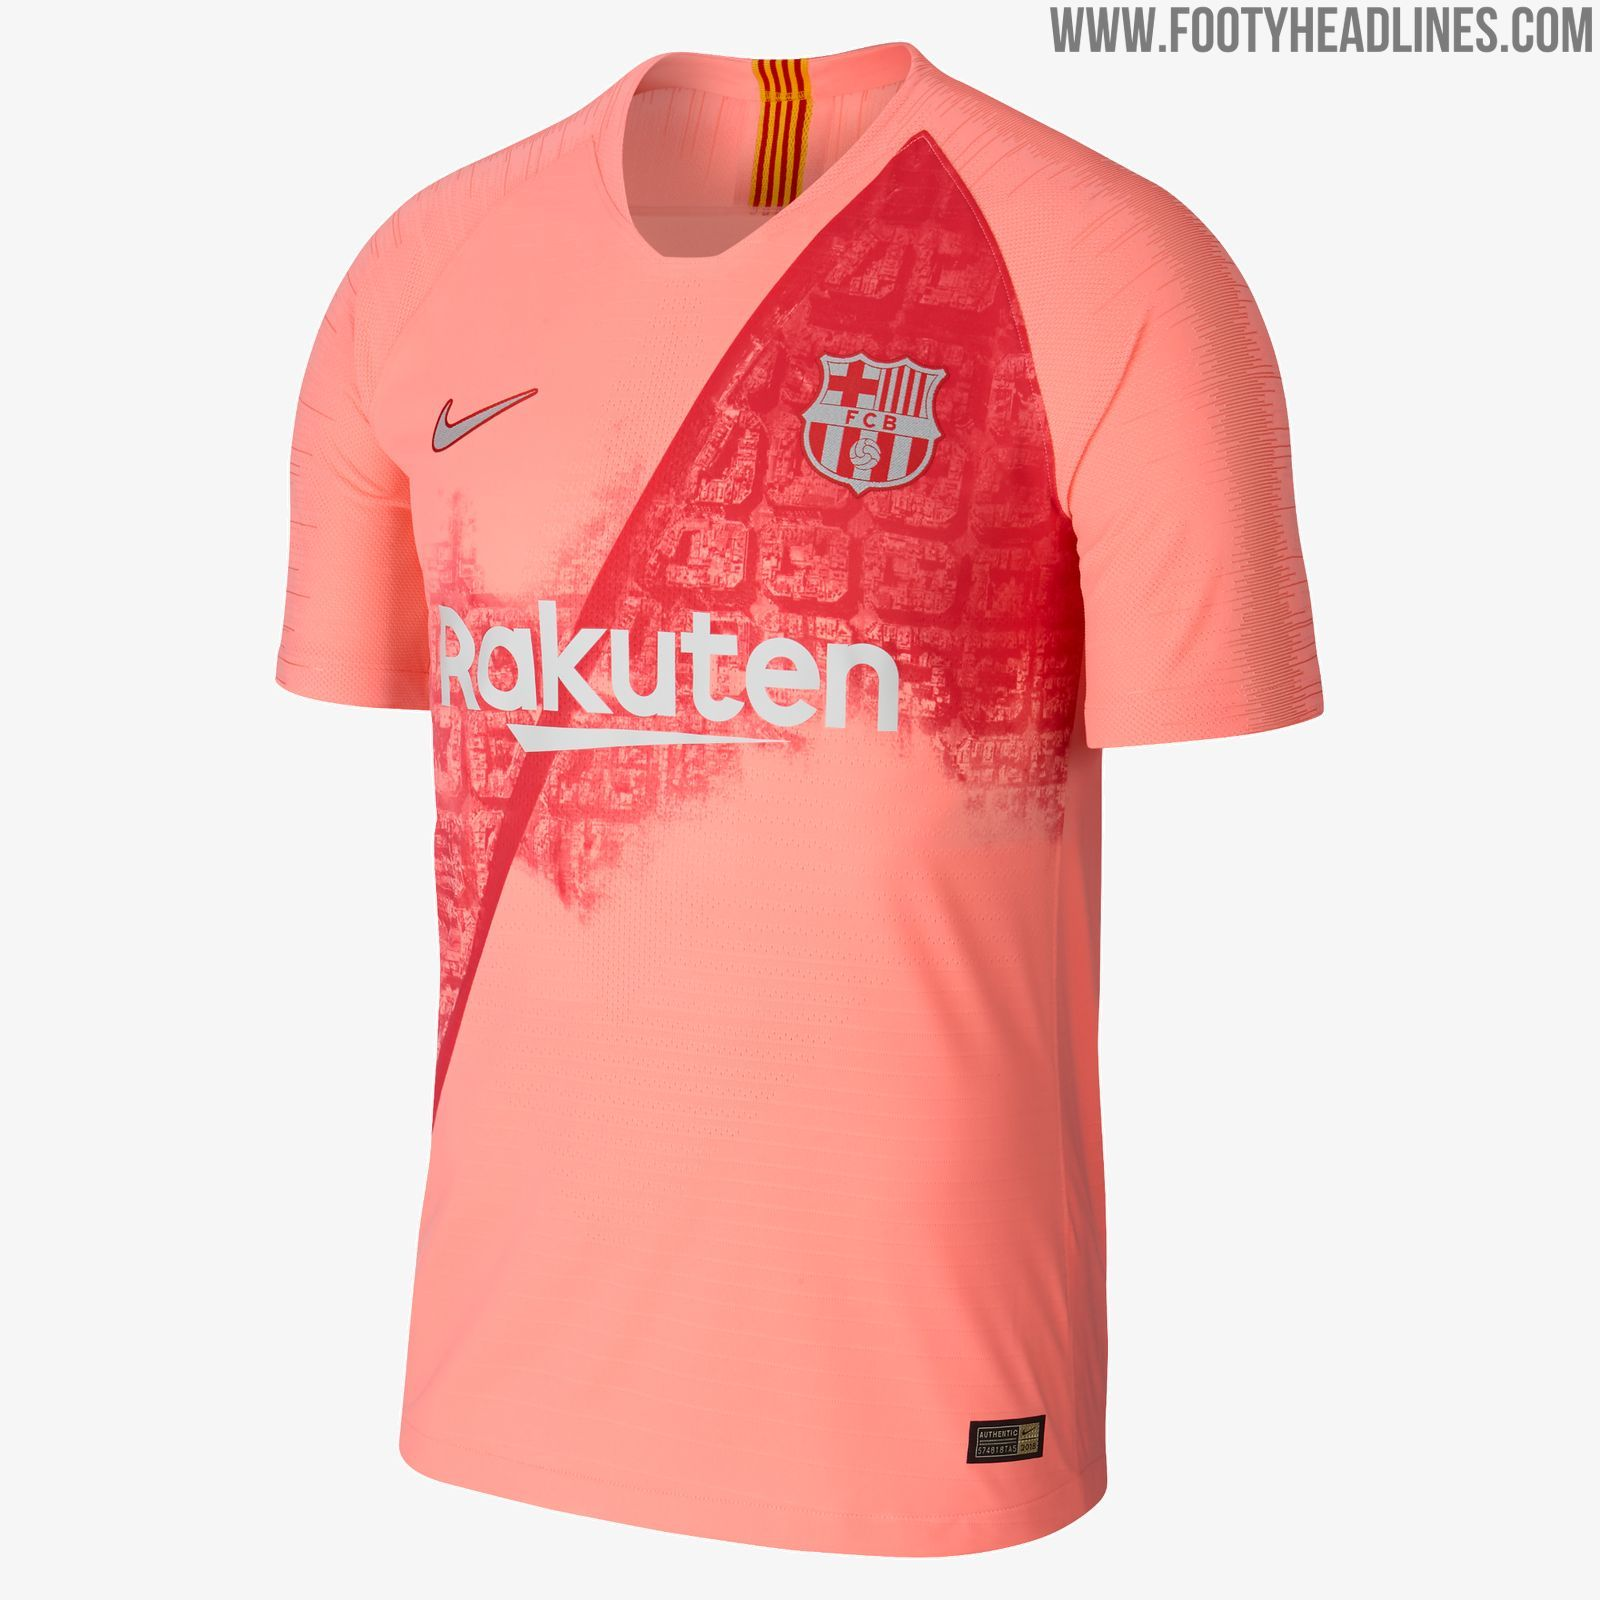 The new Nike 2018-2019 third jerseys for the brand s biggest clubs such as  Barcelona da19ec827